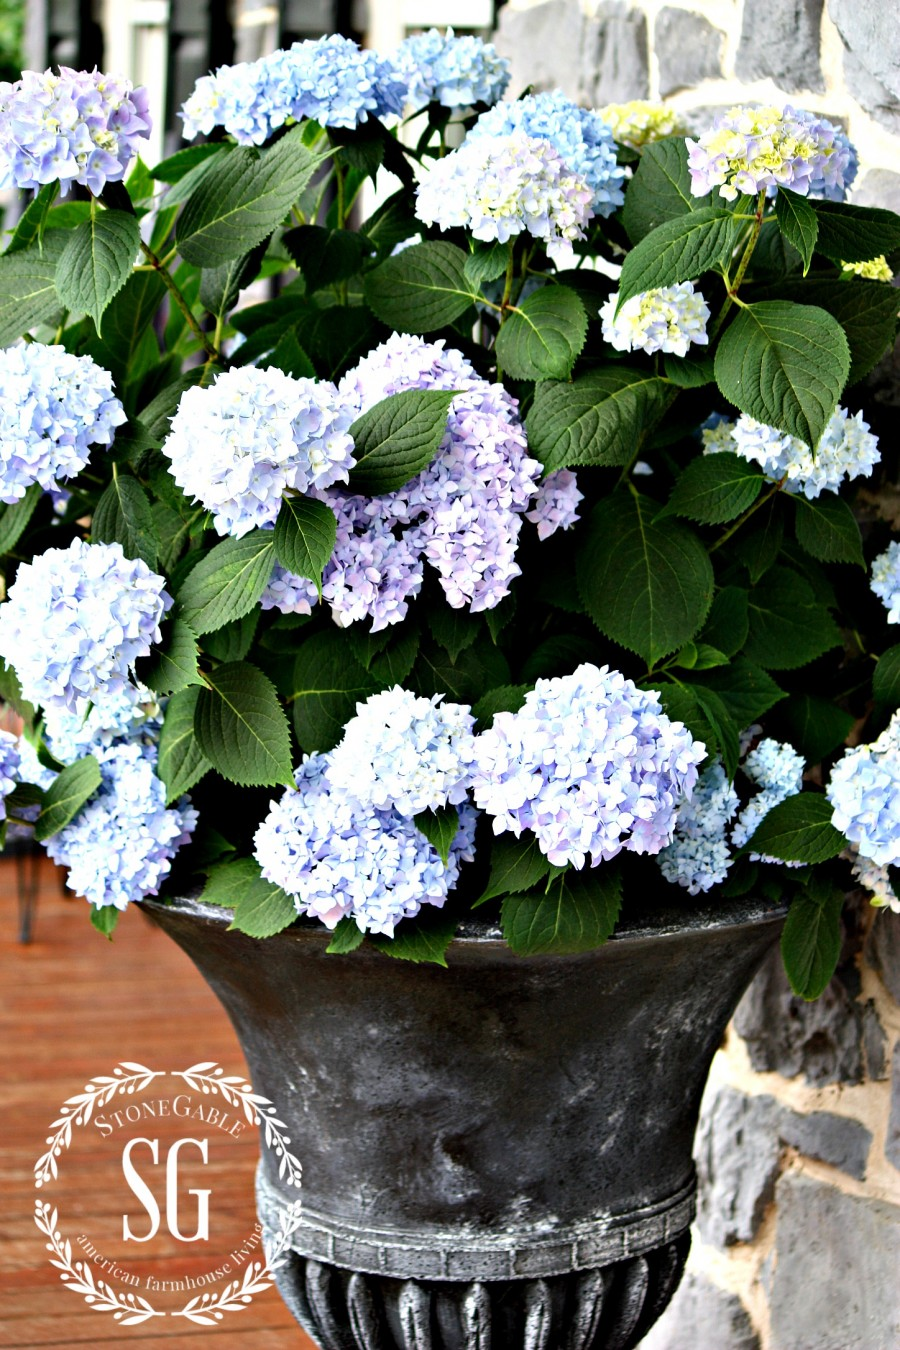 PLANTING HYDRANGEAS IN POT AND URNS-hydrangeas-blooms-endless summer-stonegableblog.com